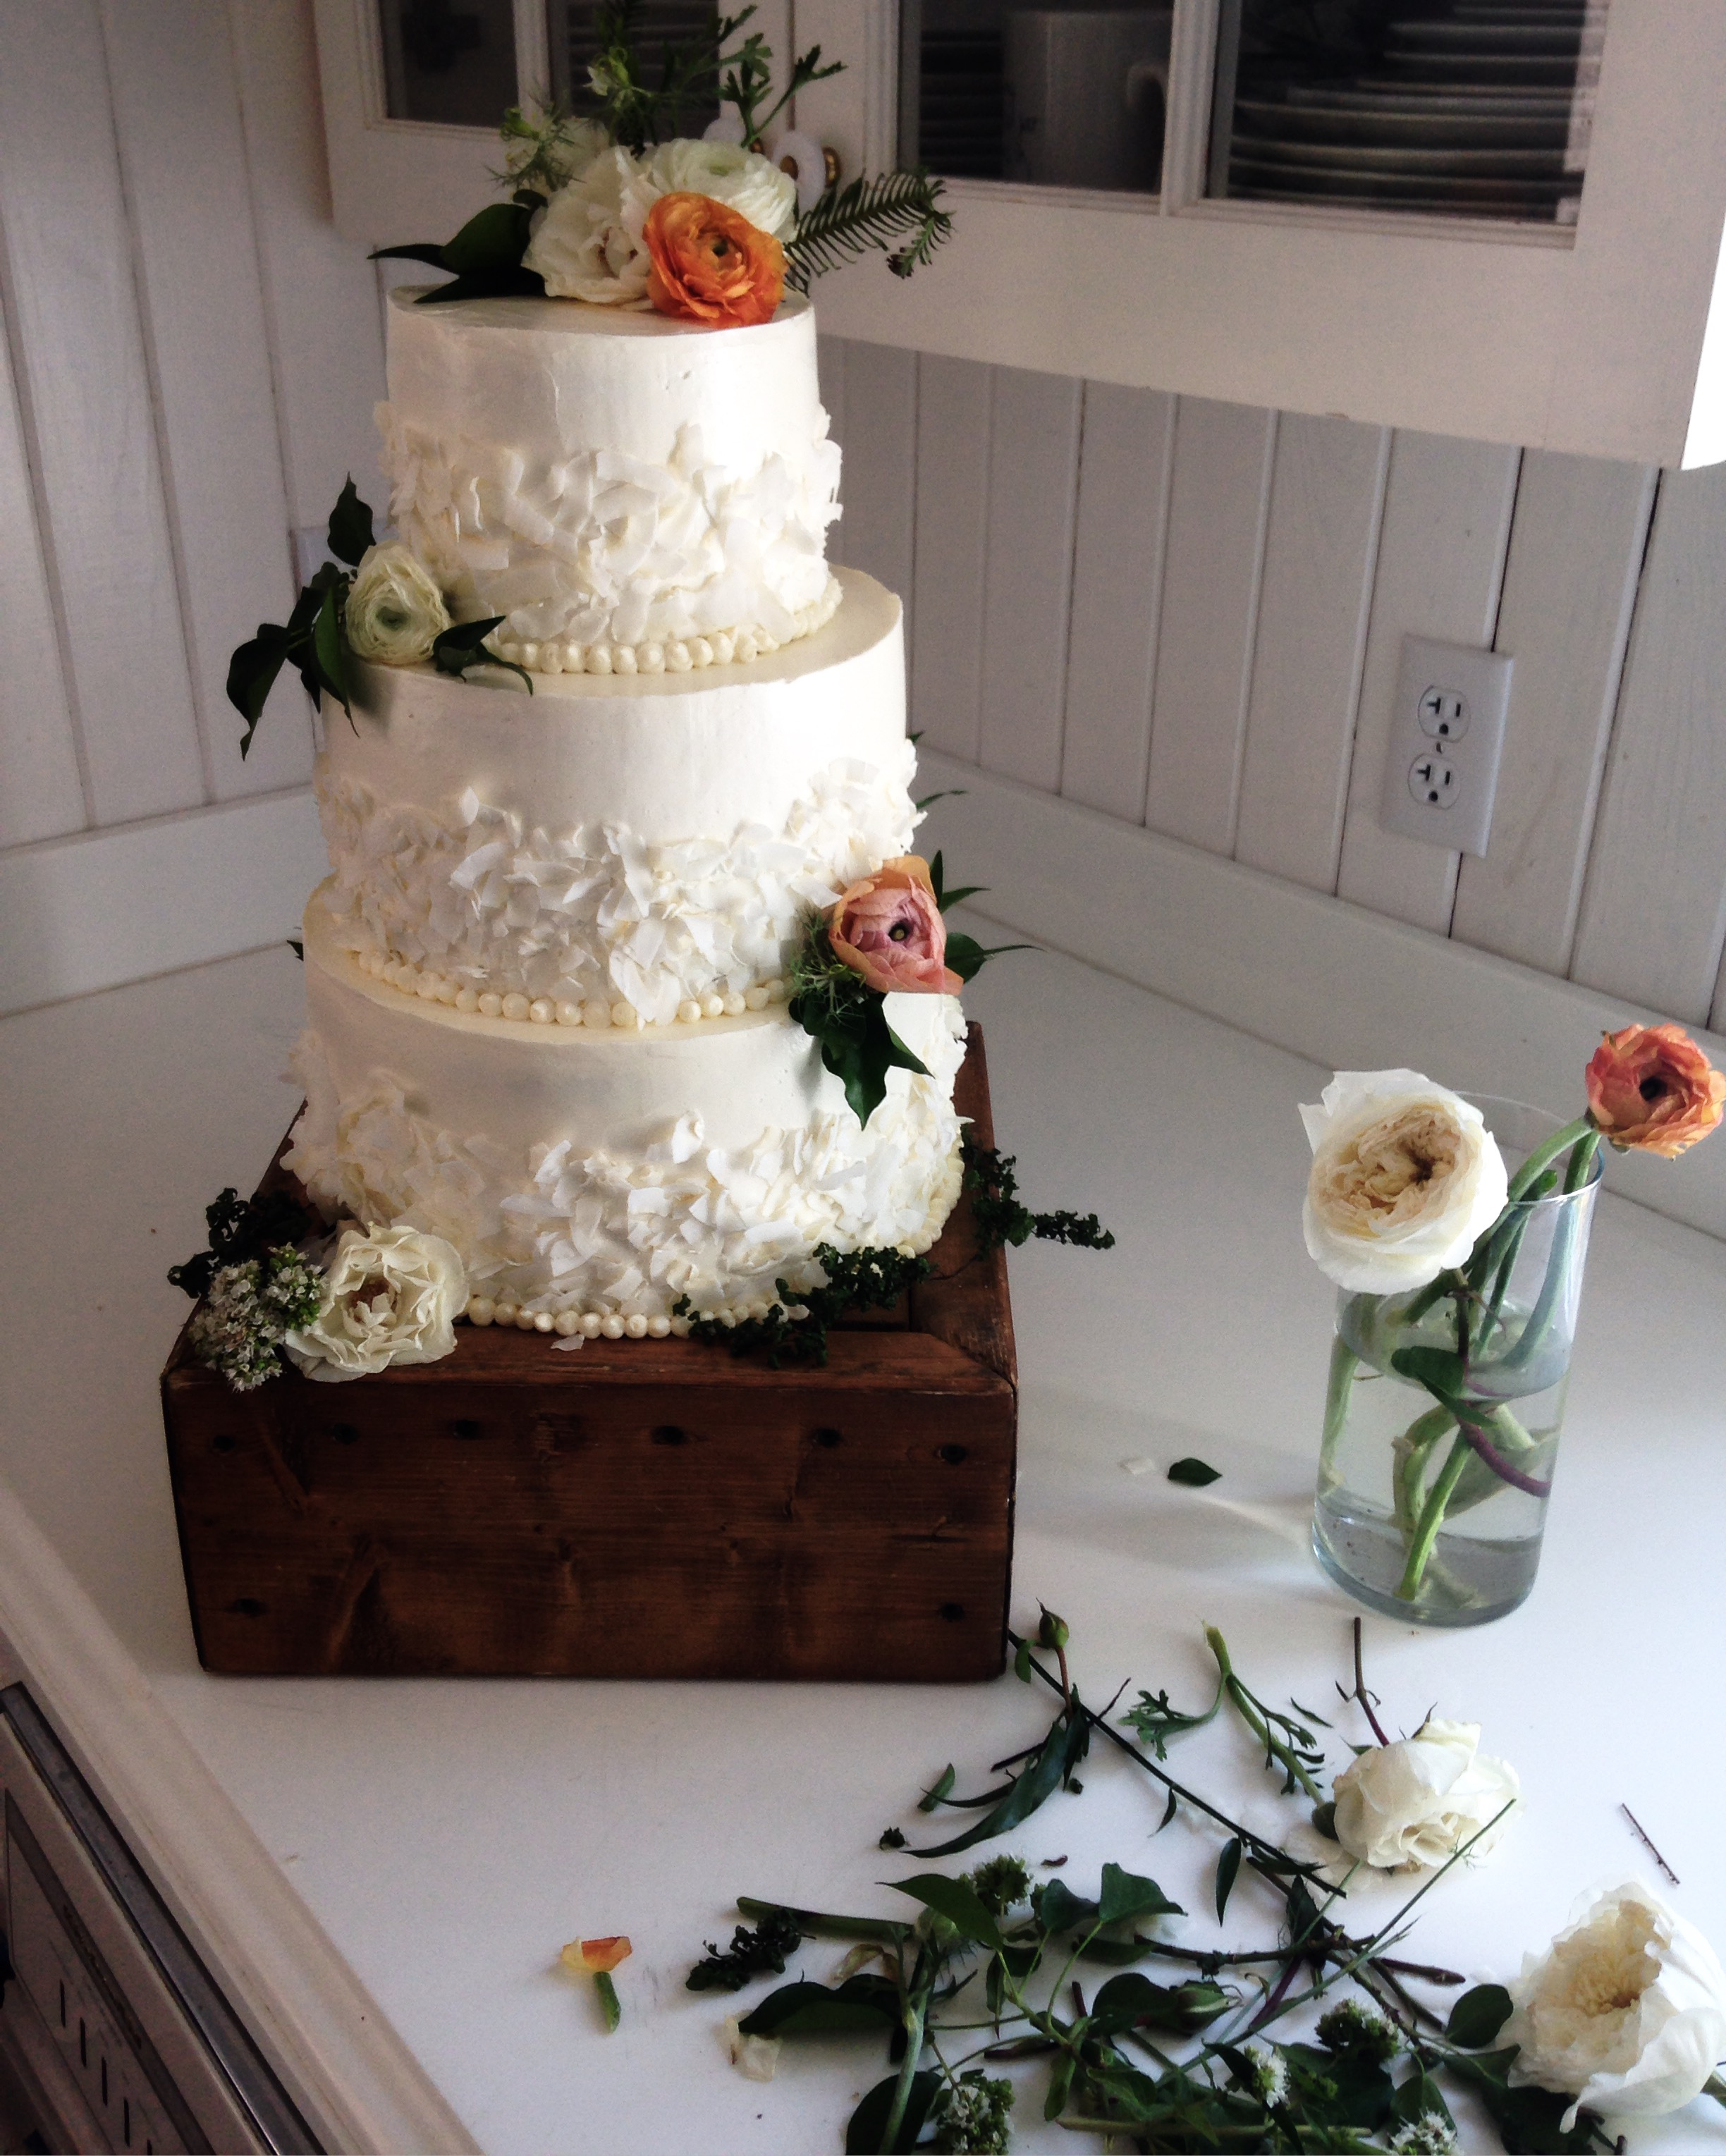 Wedding cake decorated with fresh flowers